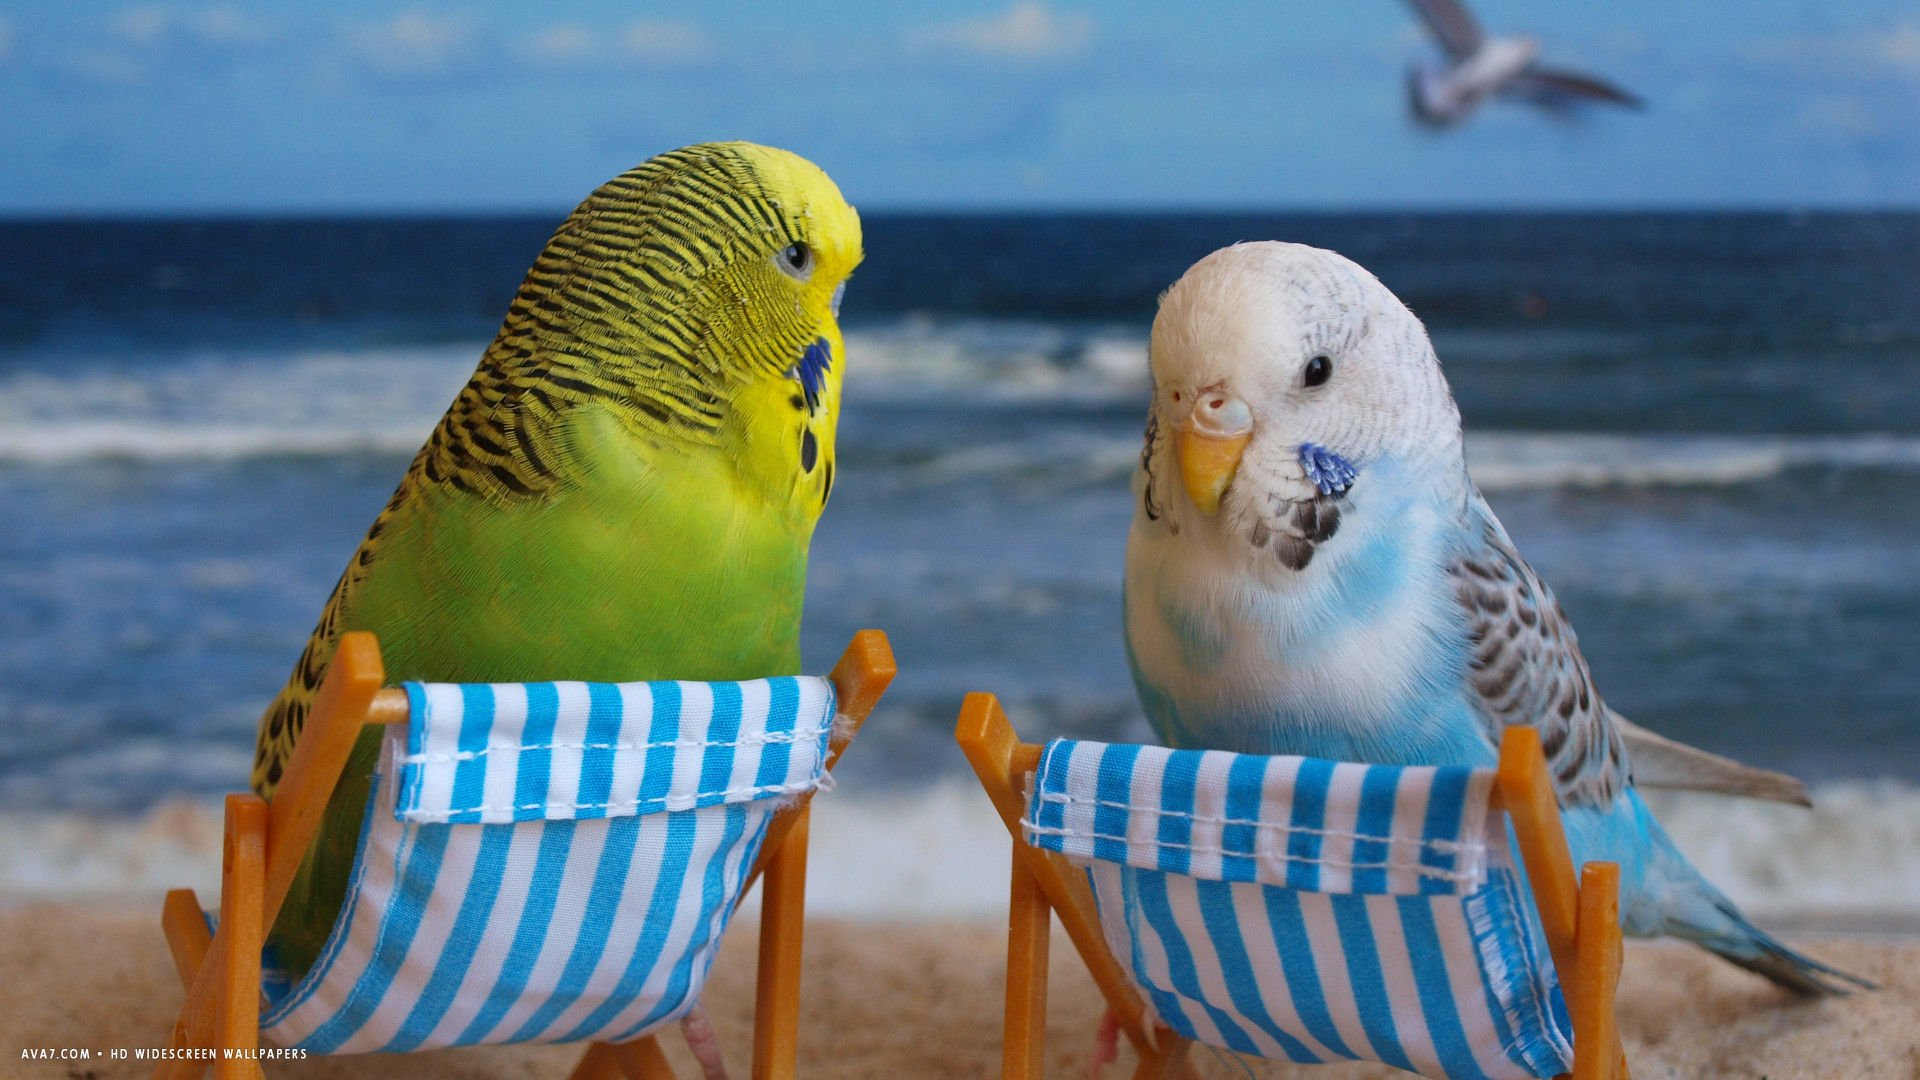 Parakeet Wallpaper  Free wallpaper download 1920x1080